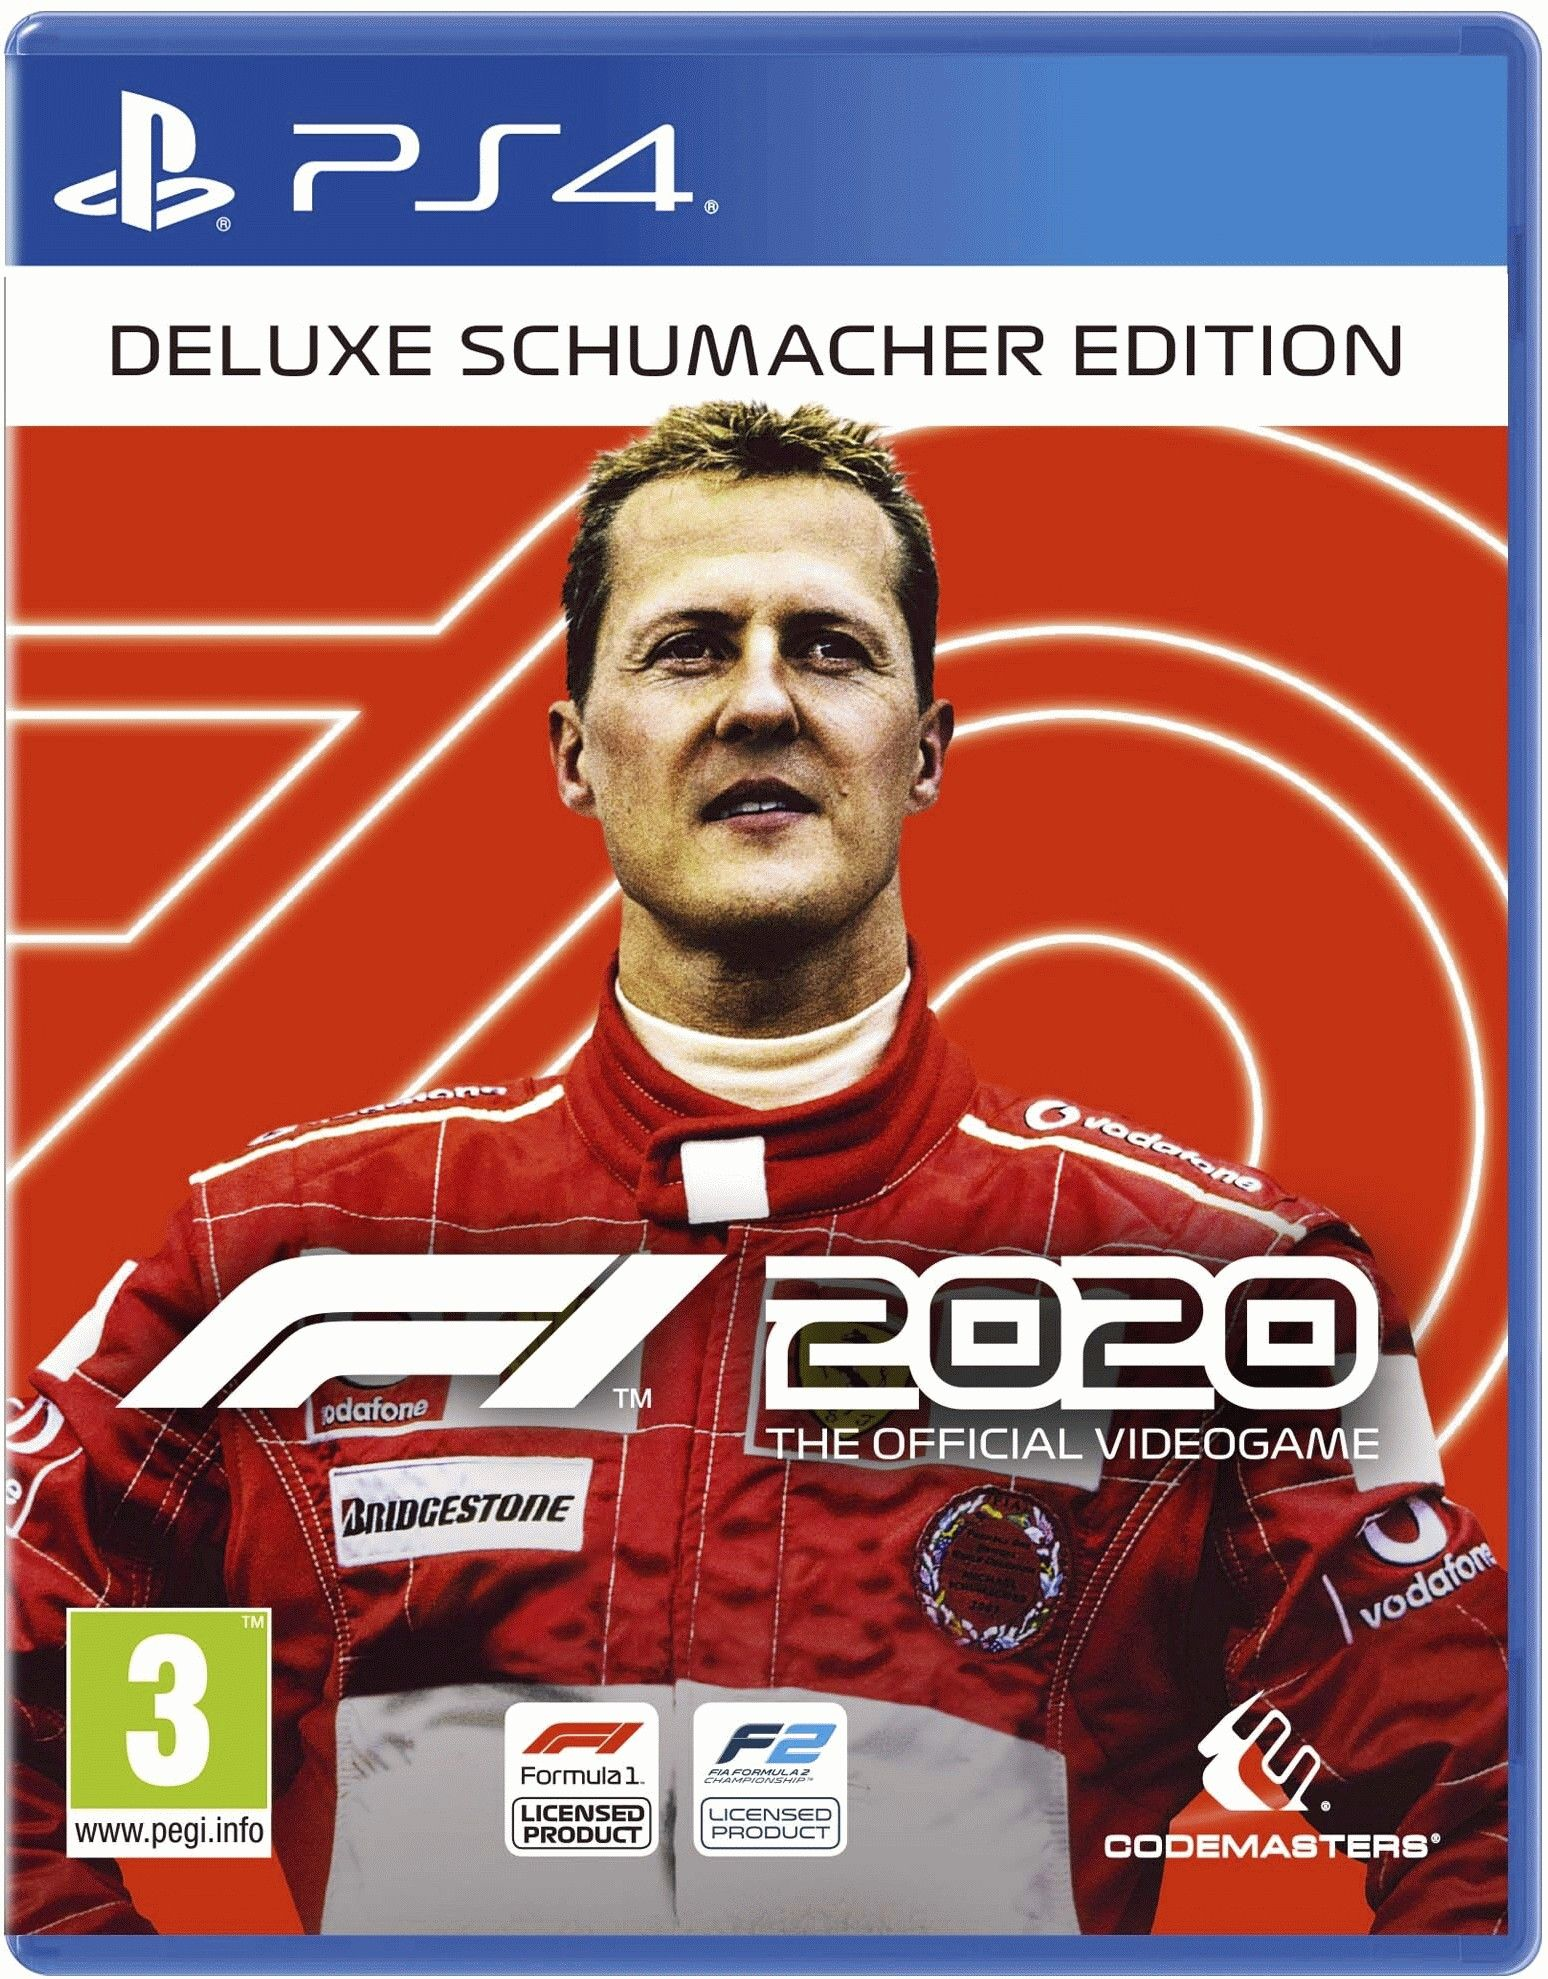 F1 2020 Deluxe - Schumacher Edition (PS4) - 1